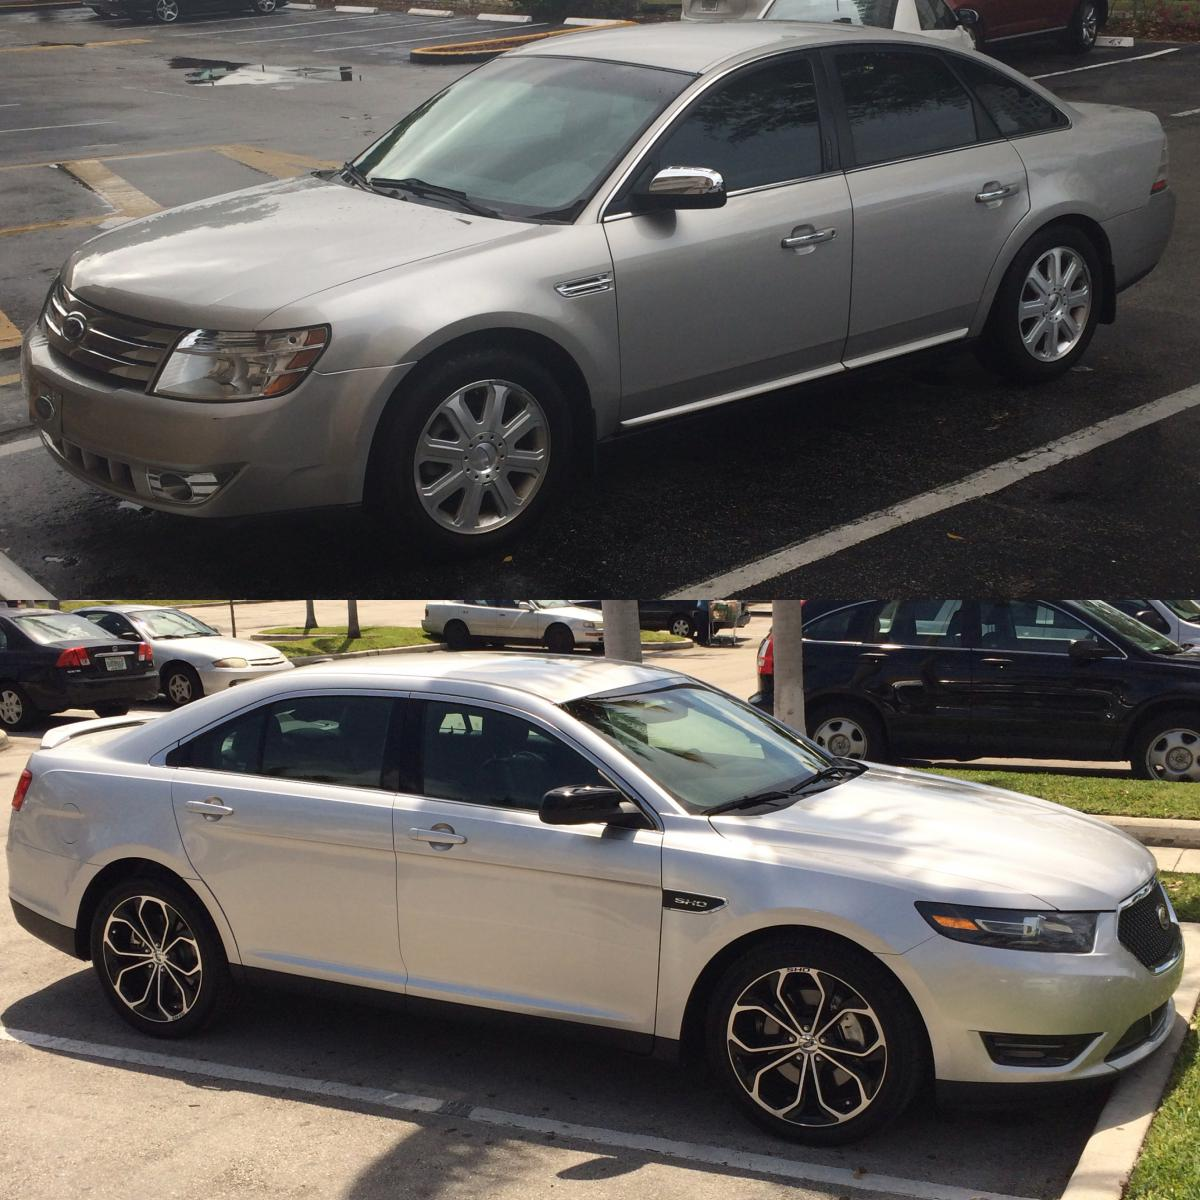 Ford Taurus Sho 2013: Hey Just Traded In 08 Taurus Limited For 2013 SHO W